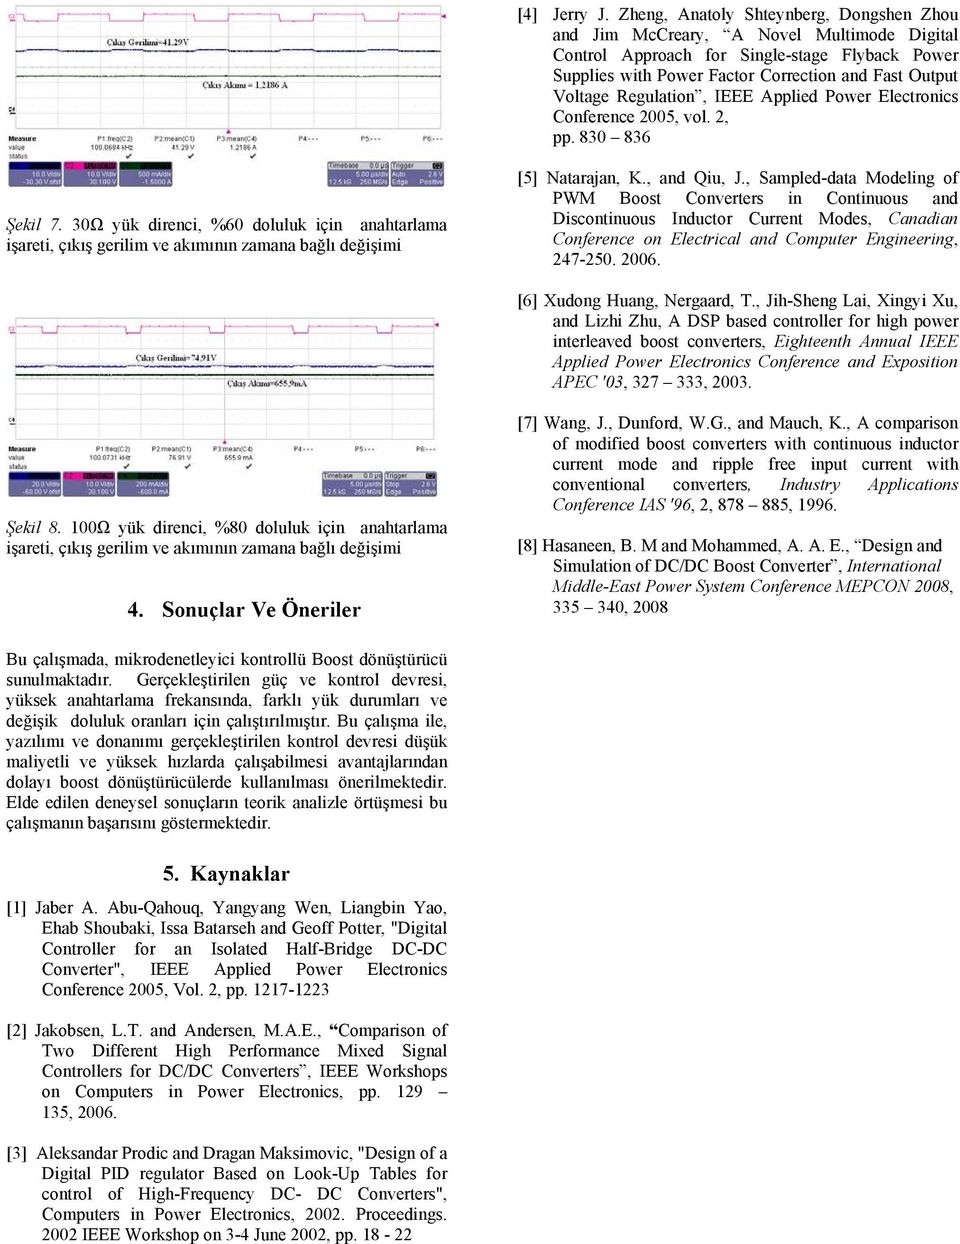 Regulation, IEEE Applied Power Electronics Conference 2005, vol. 2, pp. 830 836 Şekil 7. 30Ω yük direnci, %60 doluluk için anahtarlama [5] Natarajan, K., and Qiu, J.